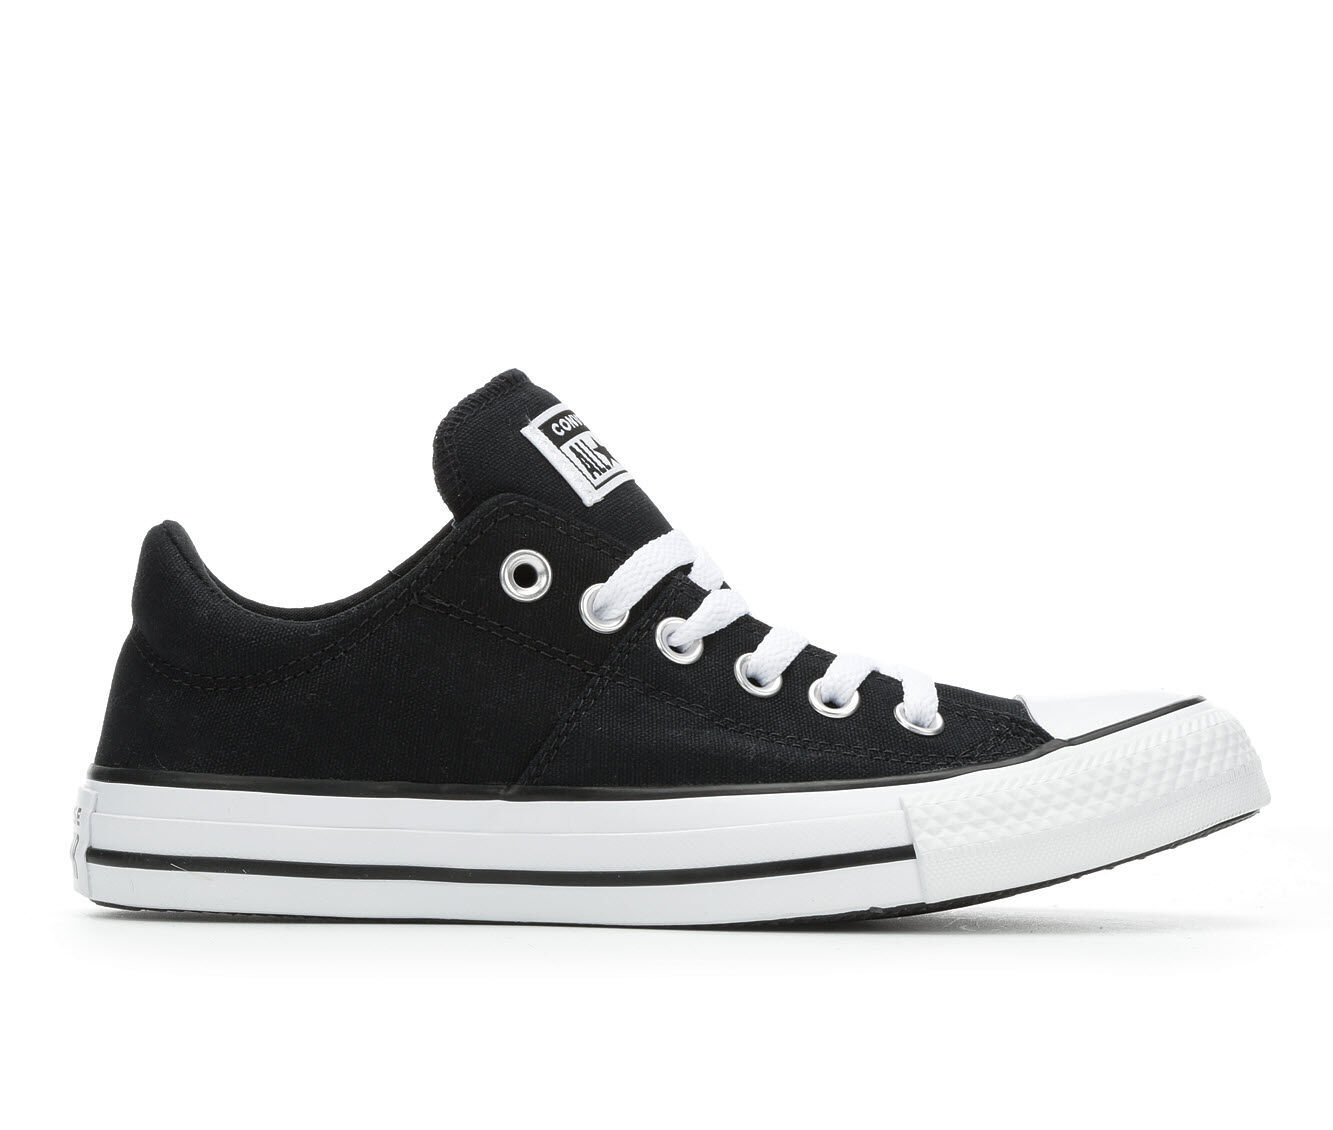 Women's Converse Madison Ox Sneakers Black/Wht/Blk